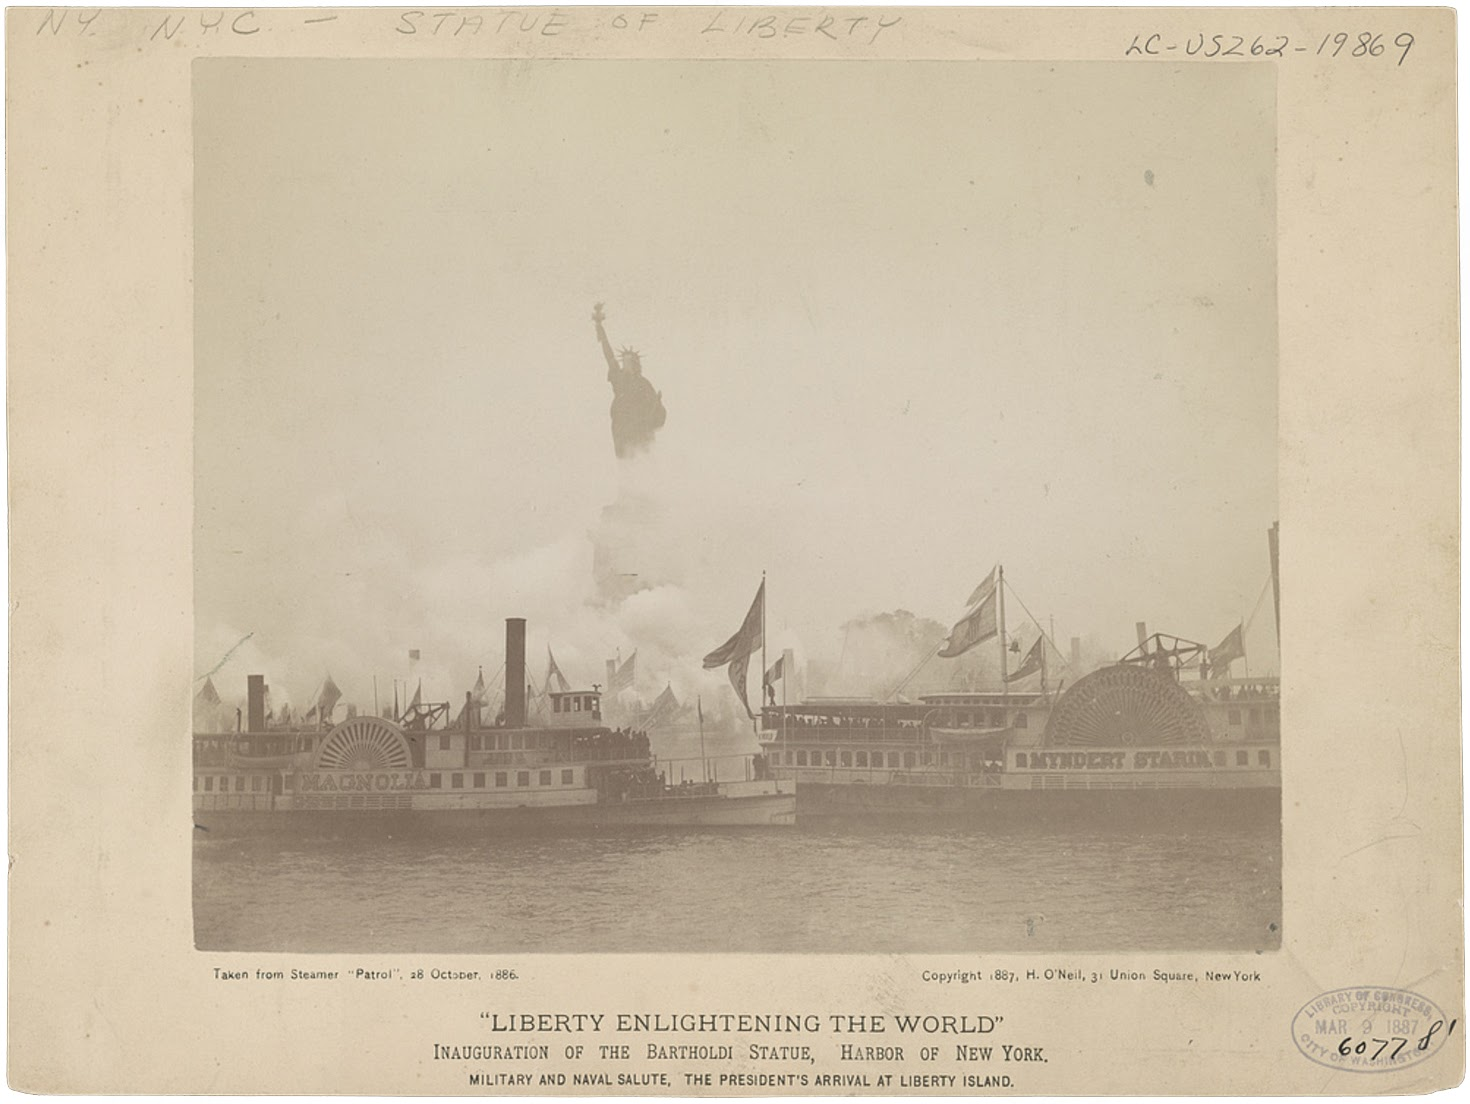 A military salute for the president's arrival at Liberty Island during the inauguration of the Statue of Liberty, taken from the 'Patrol' in 1886